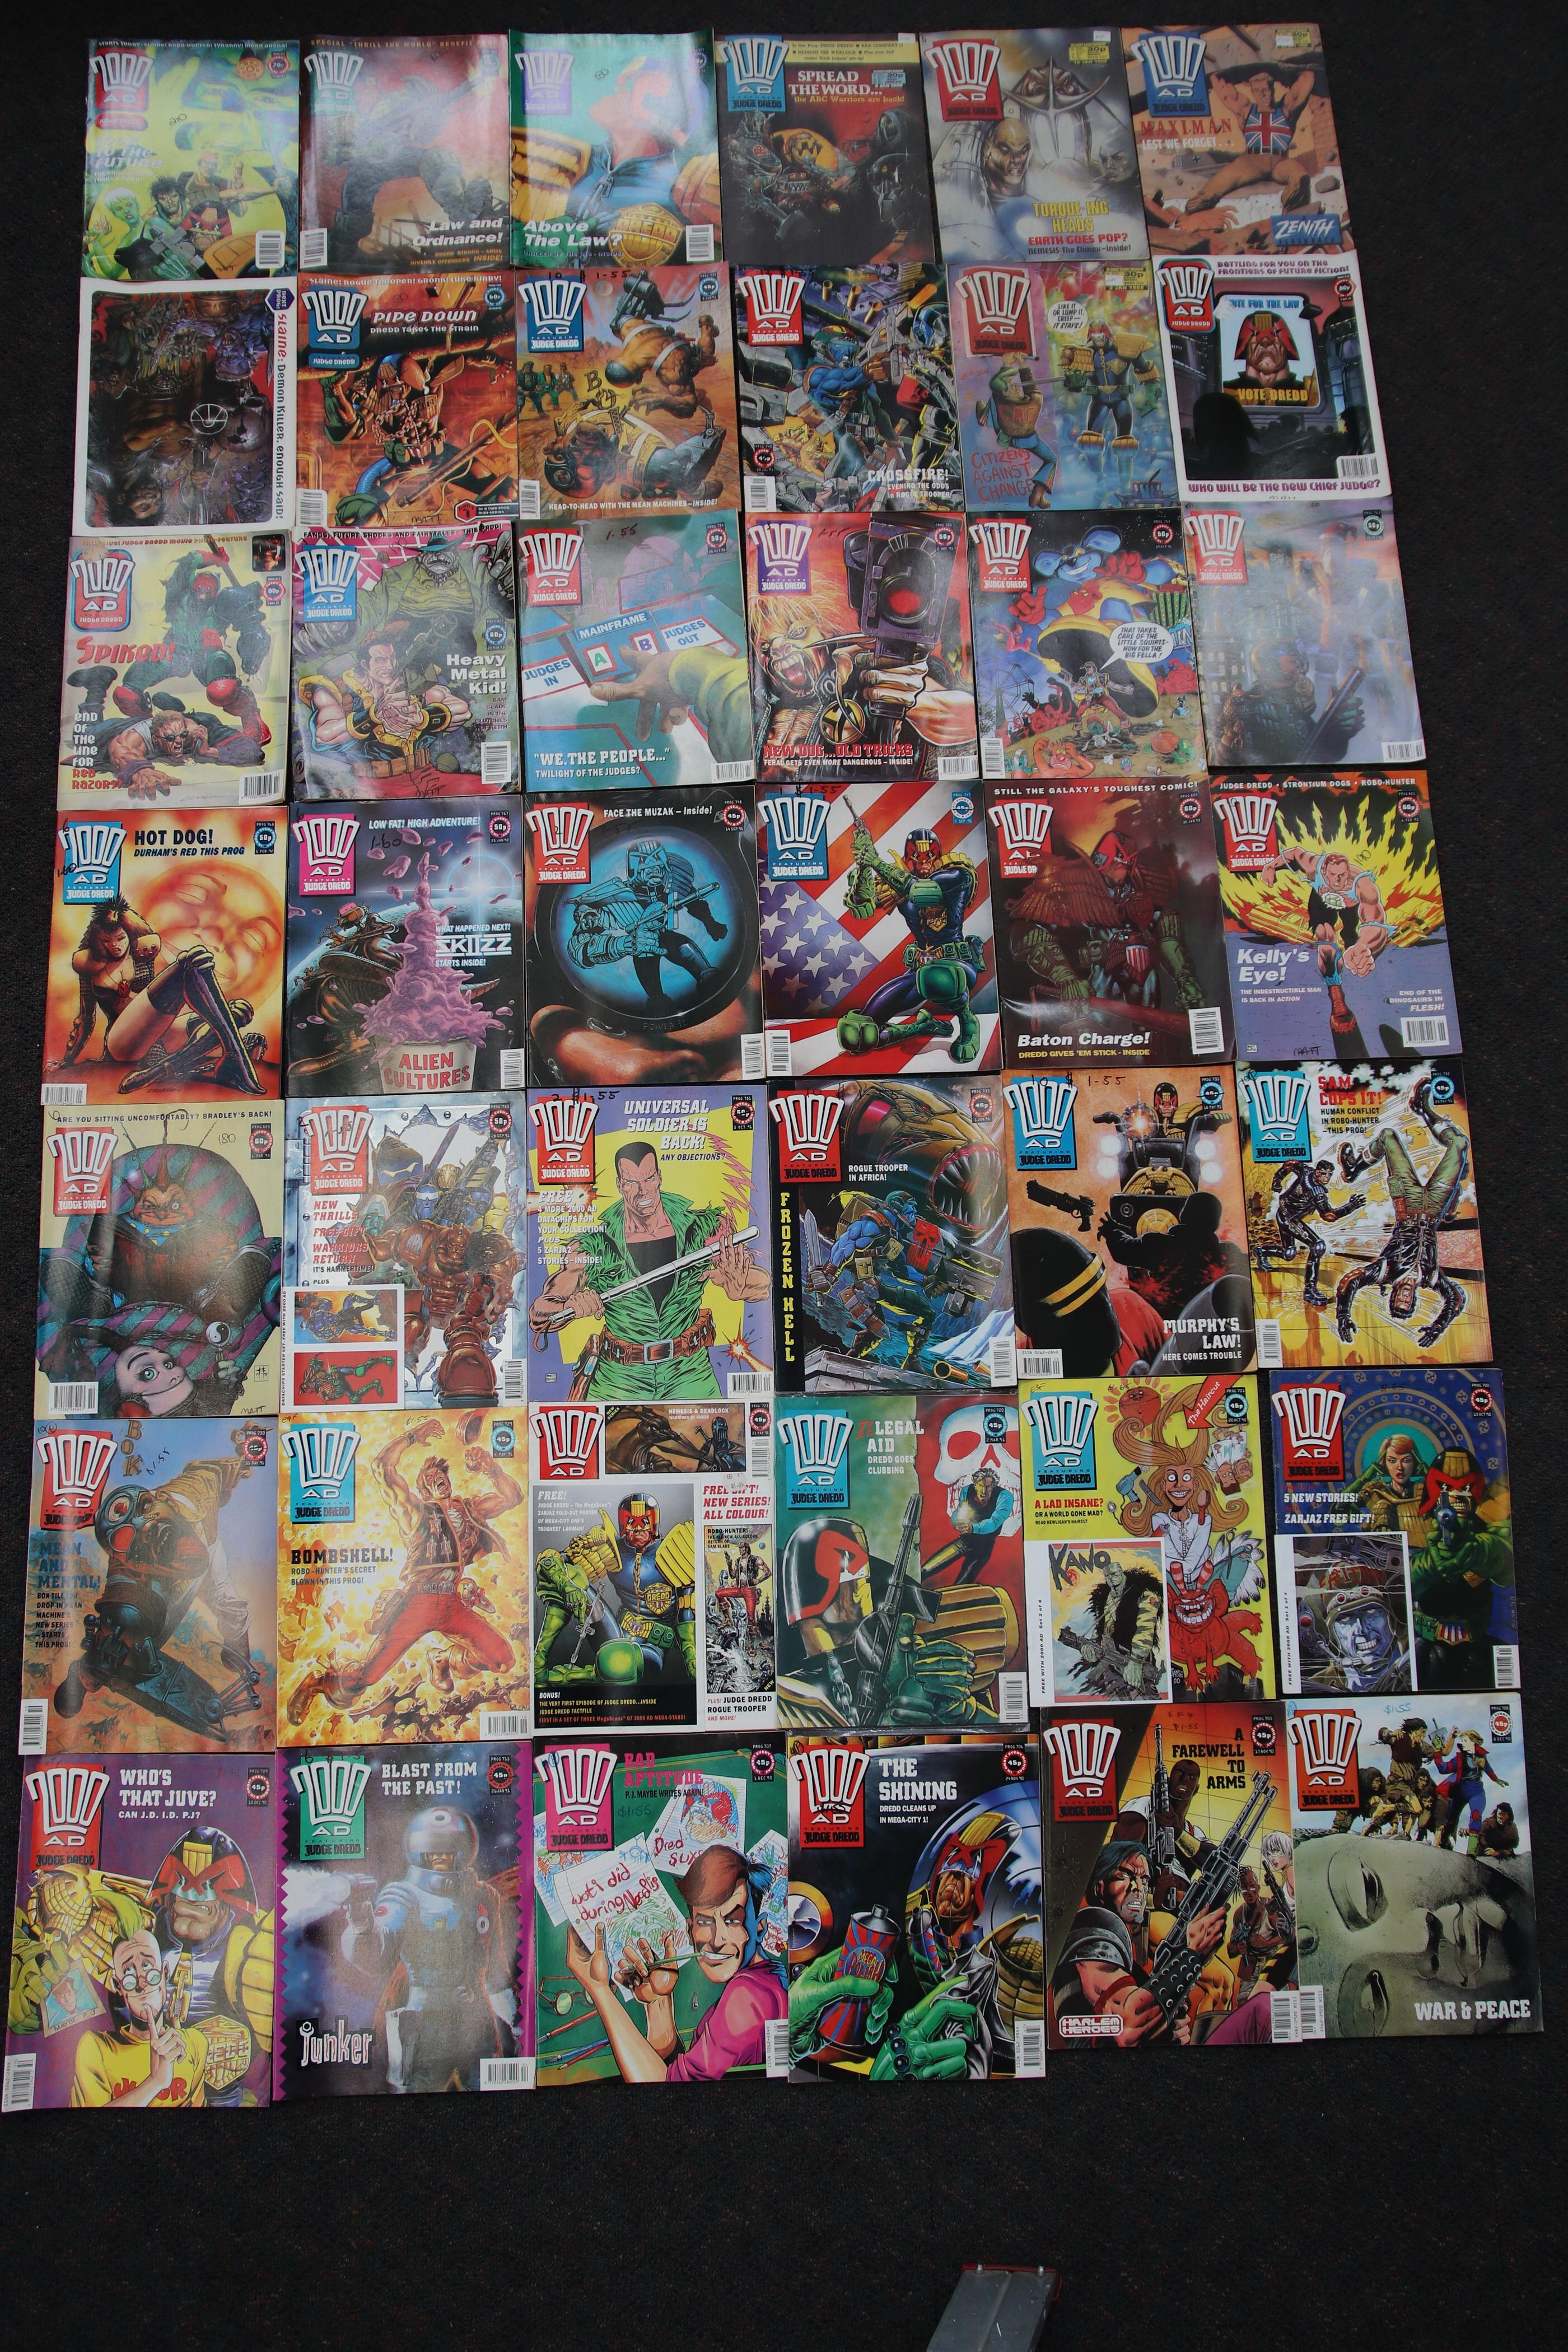 SELECTION OF COMICS 2000 AS FEATURING JUDGE DREDD